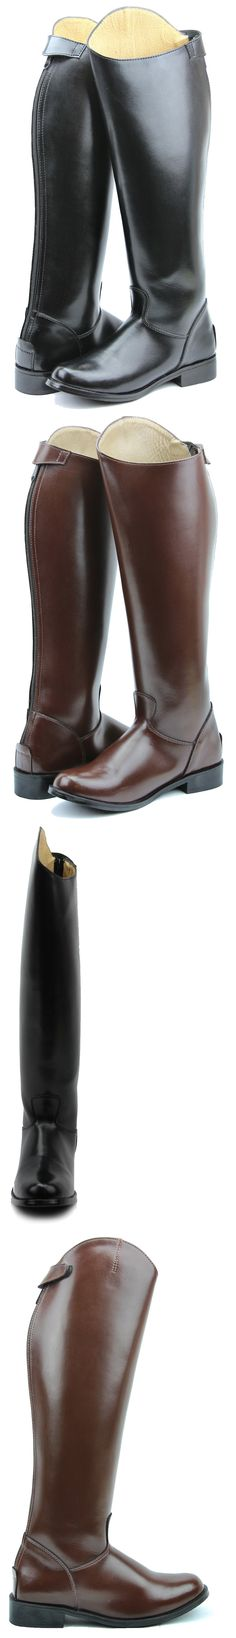 Tall Riding Boots 183382: Hispar Mens Decent Dress Dressage Boots With Zipper Riding English Equestrian BUY IT NOW ONLY: $219.99